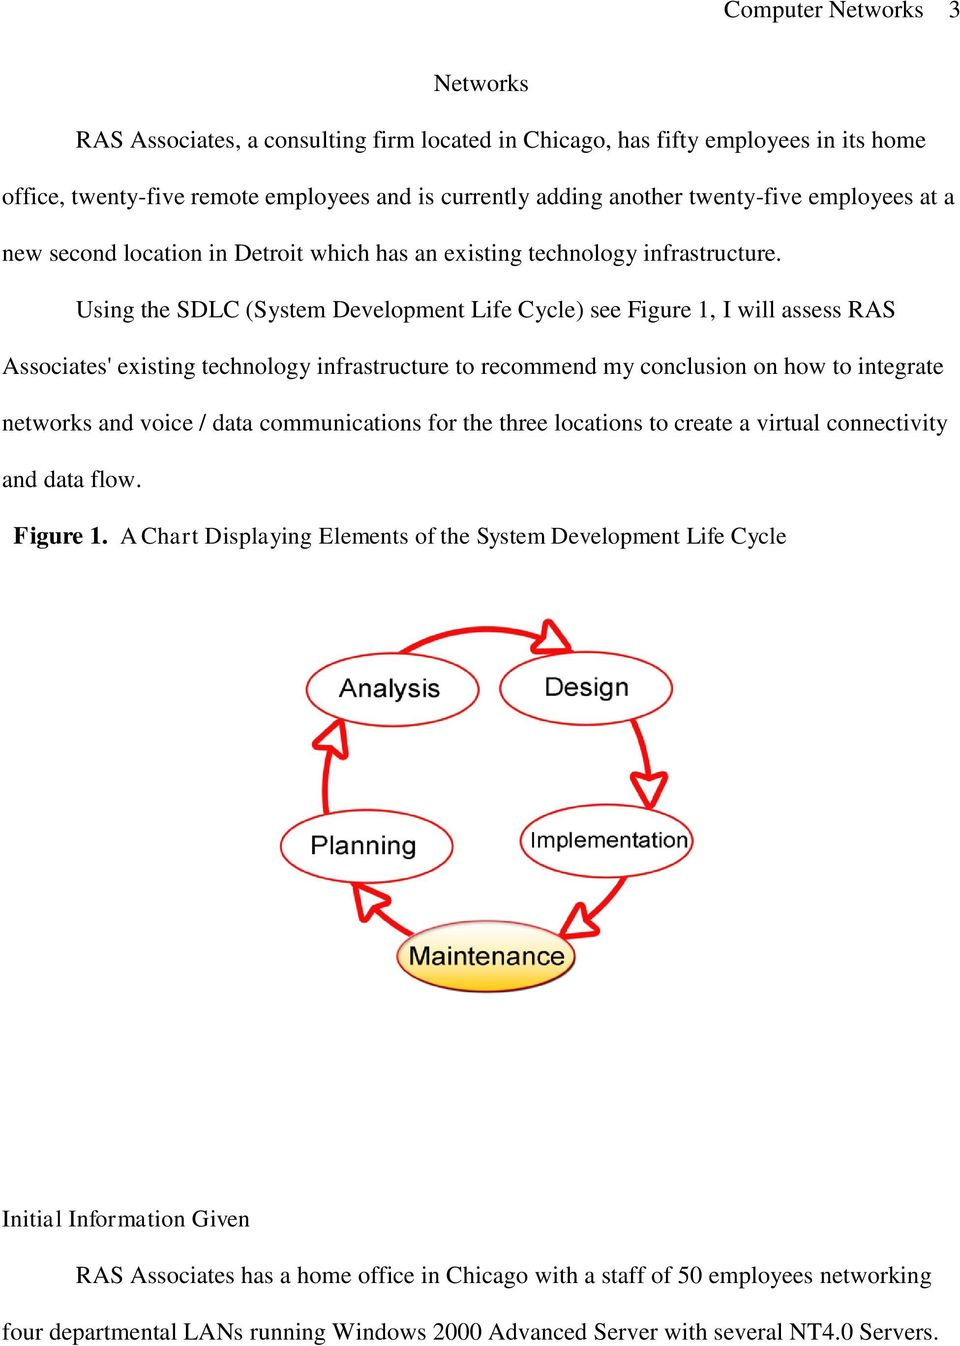 Using the SDLC (System Development Life Cycle) see Figure 1, I will assess RAS Associates' existing technology infrastructure to recommend my conclusion on how to integrate networks and voice / data